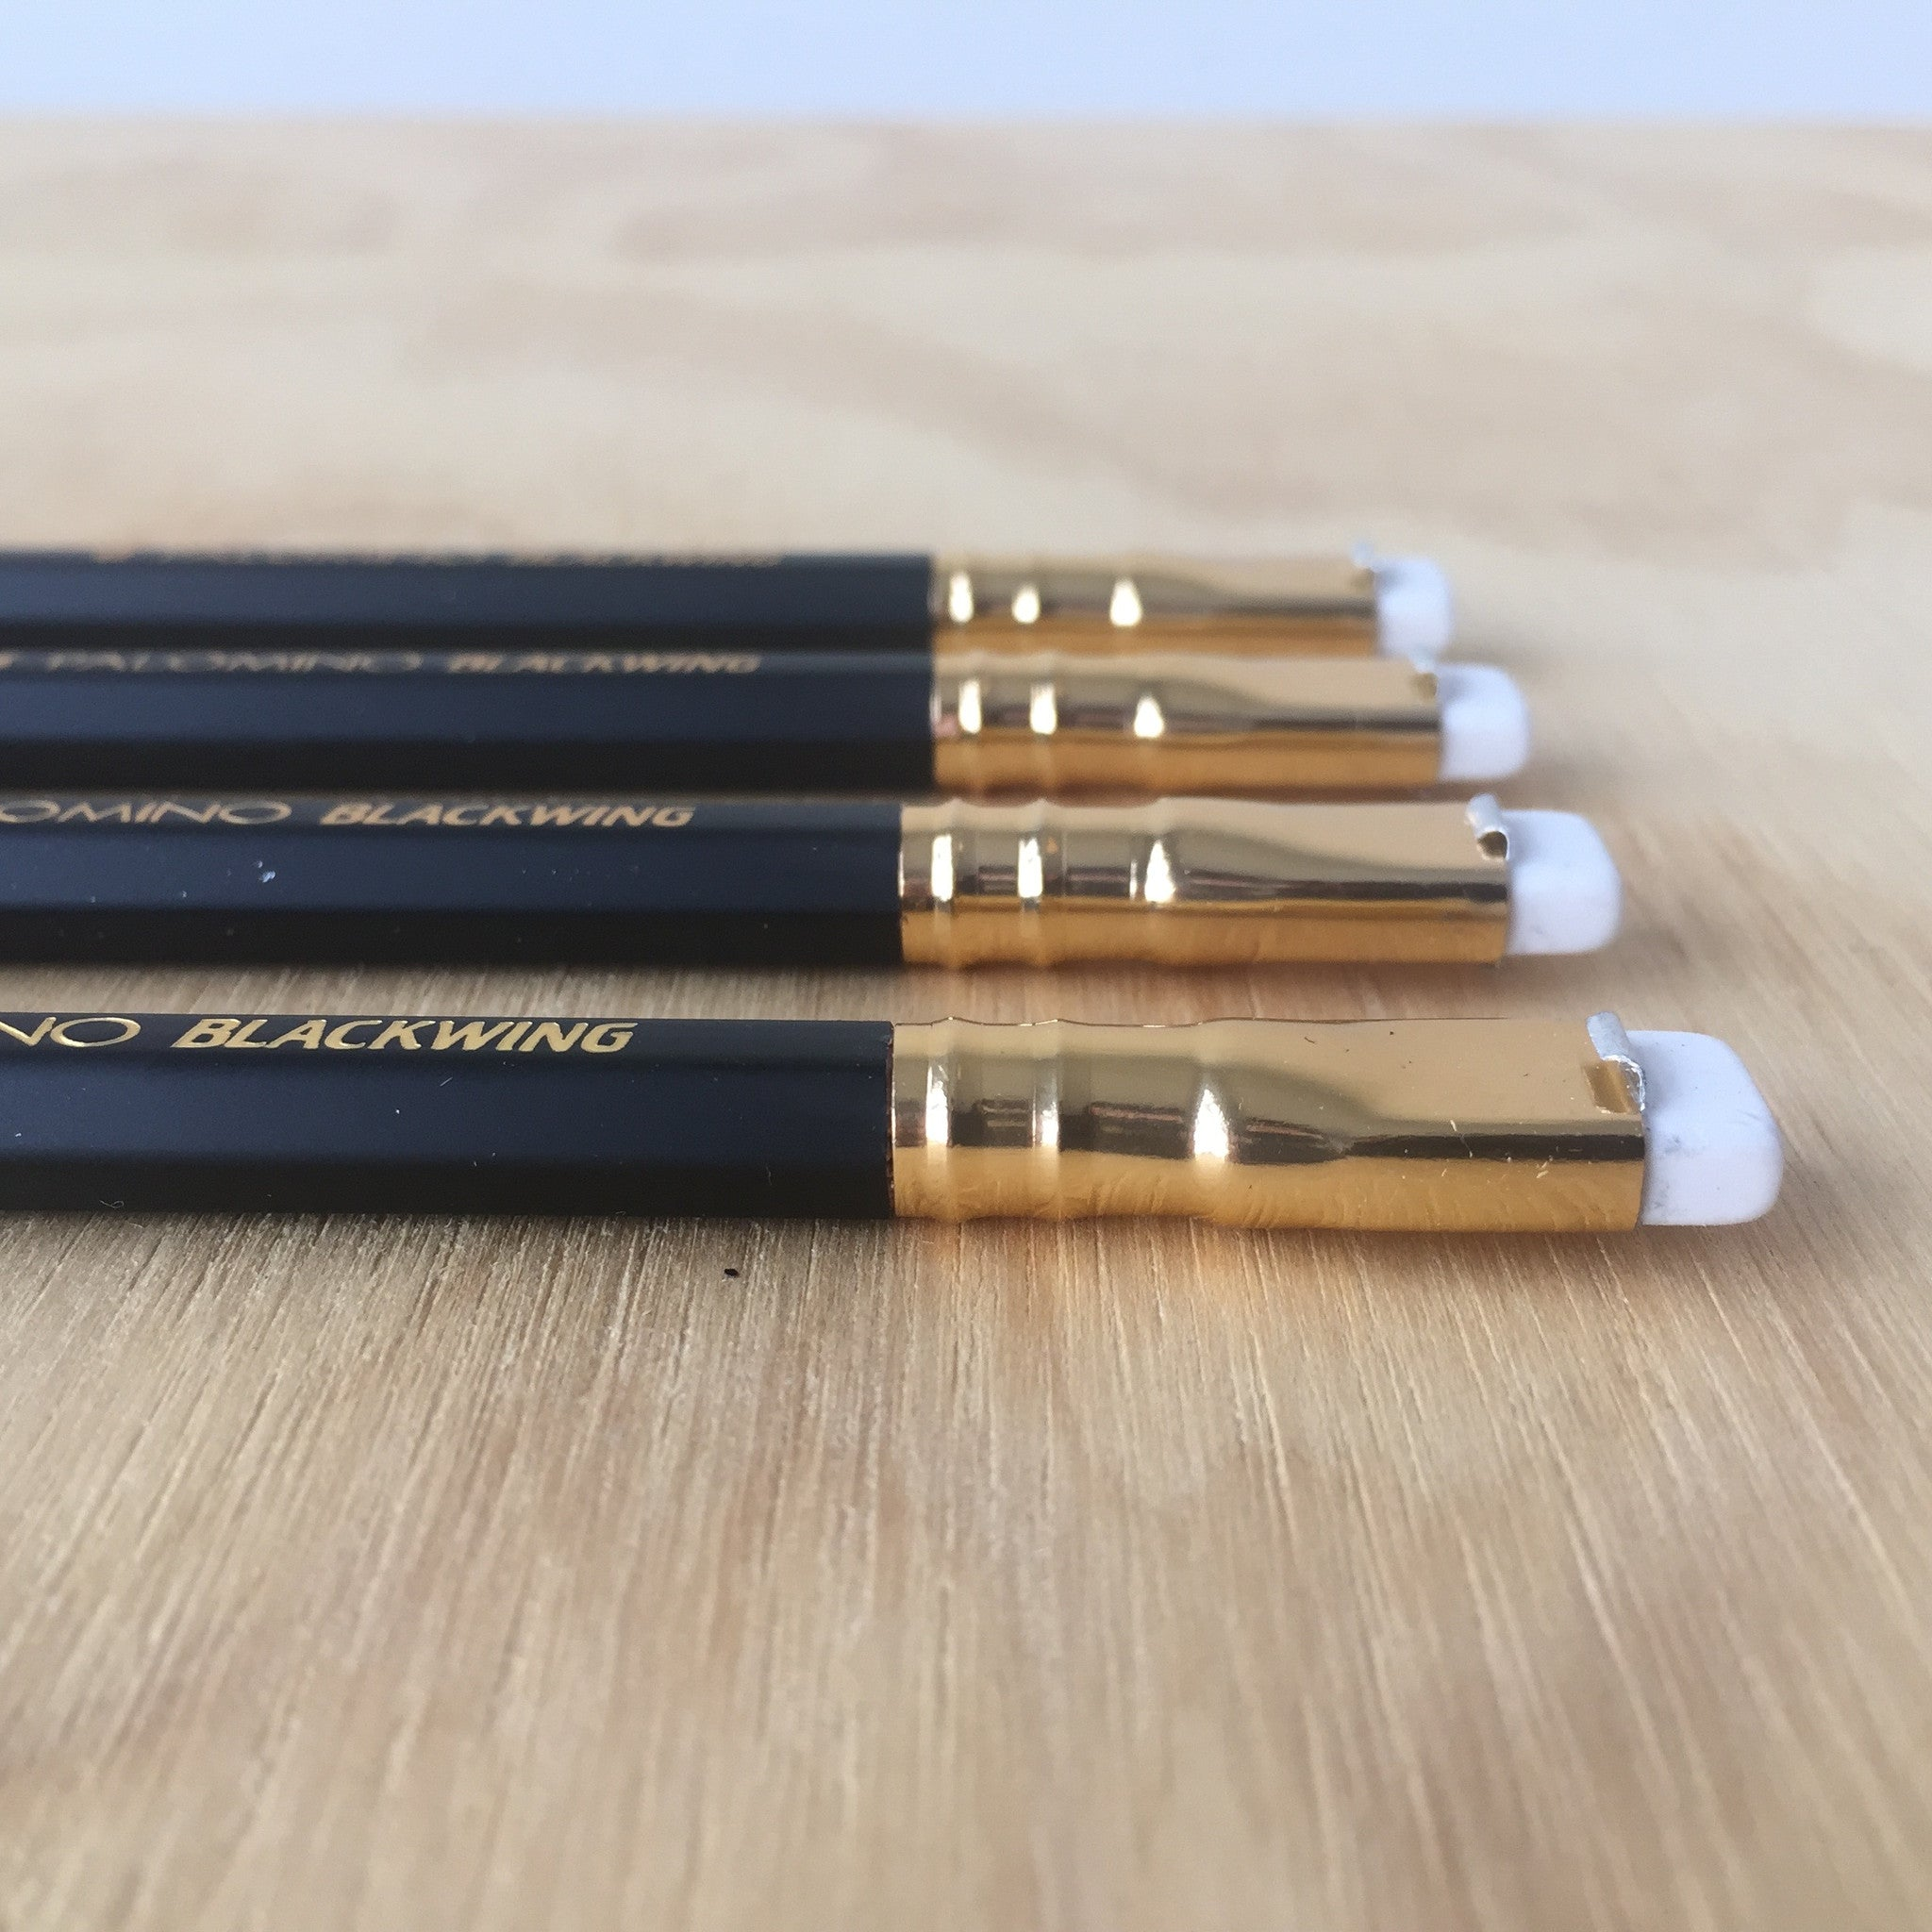 Box of 12 Blackwing Palomino Pencil - Upstate MN